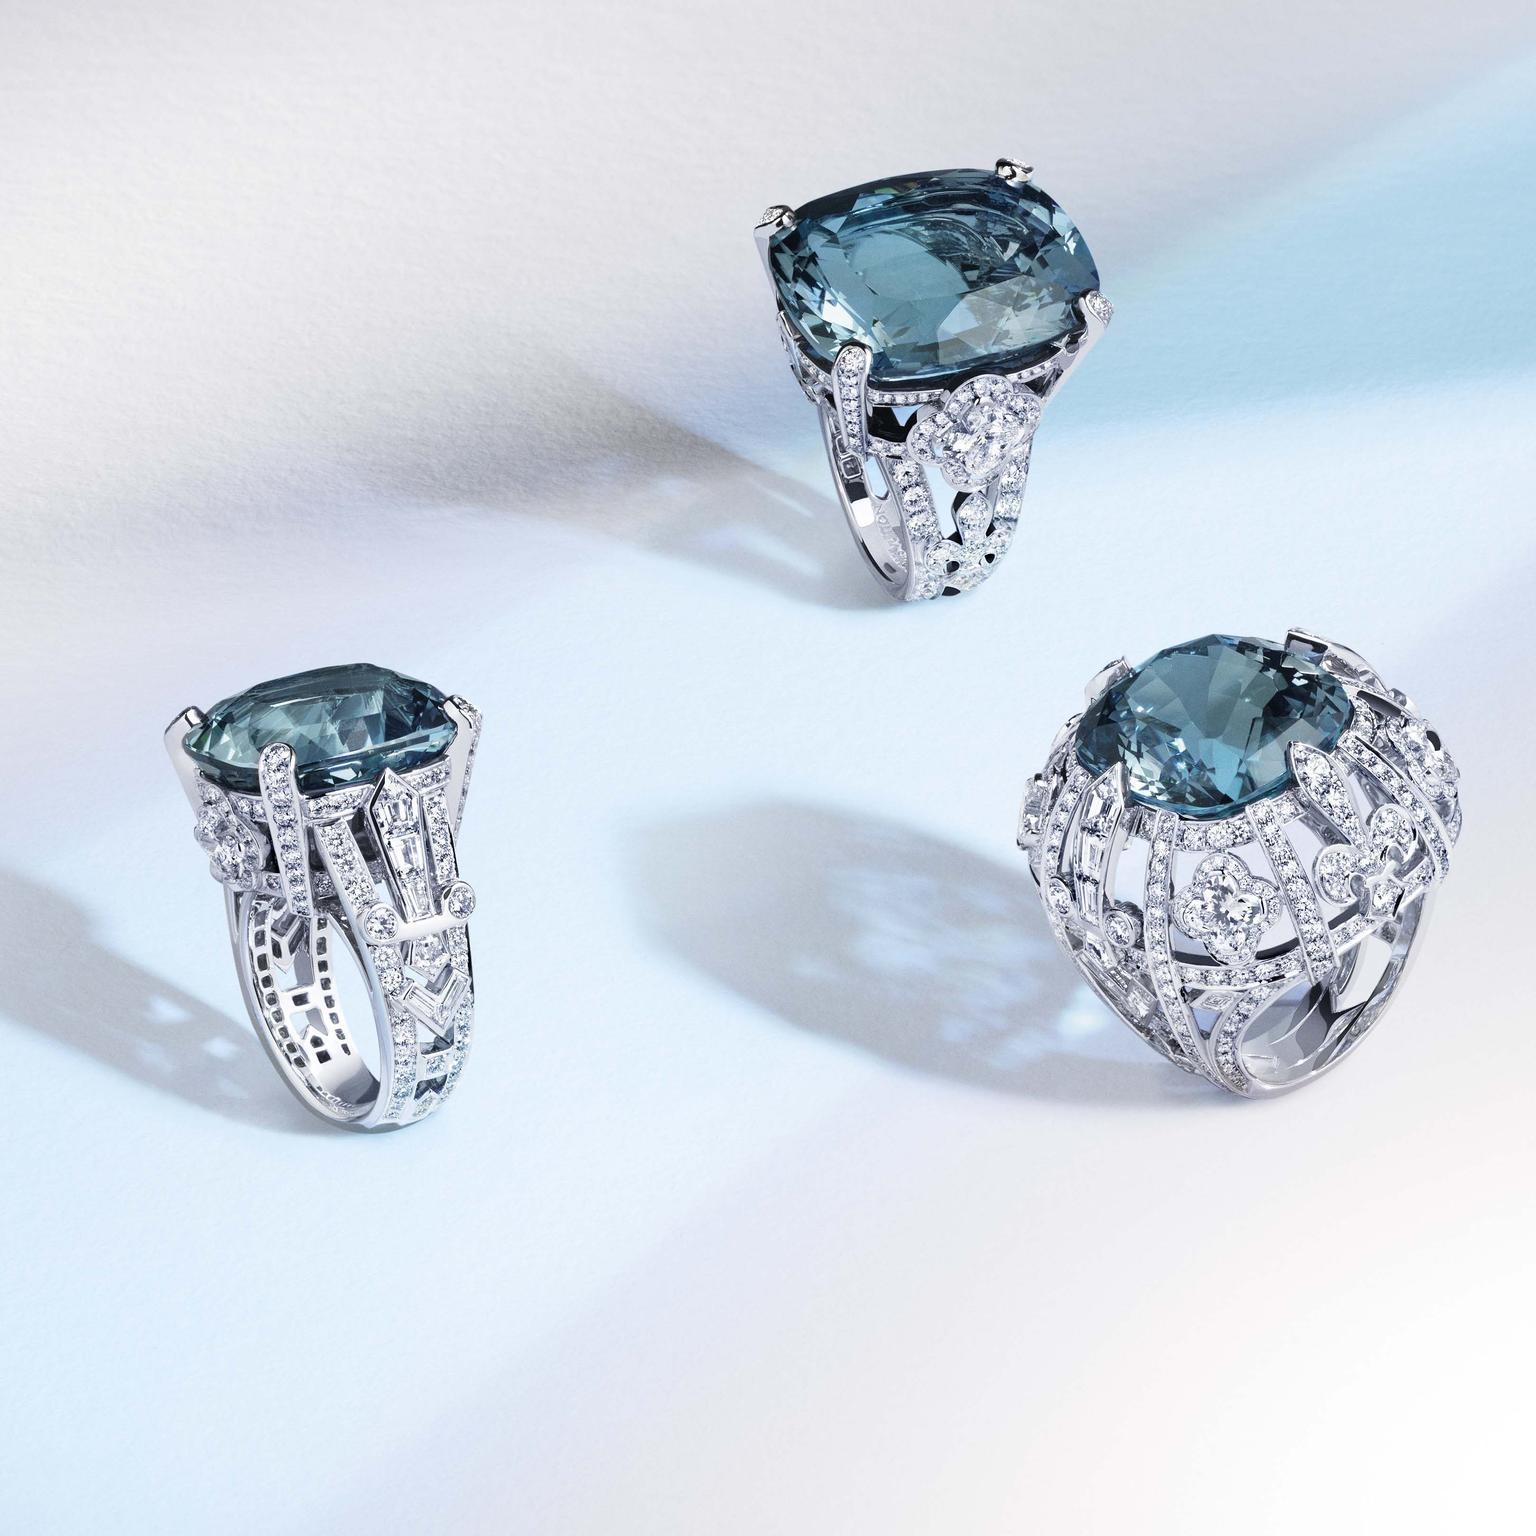 uis Vuitton Riders of the Knights La Reine diamond and aquamarine rings